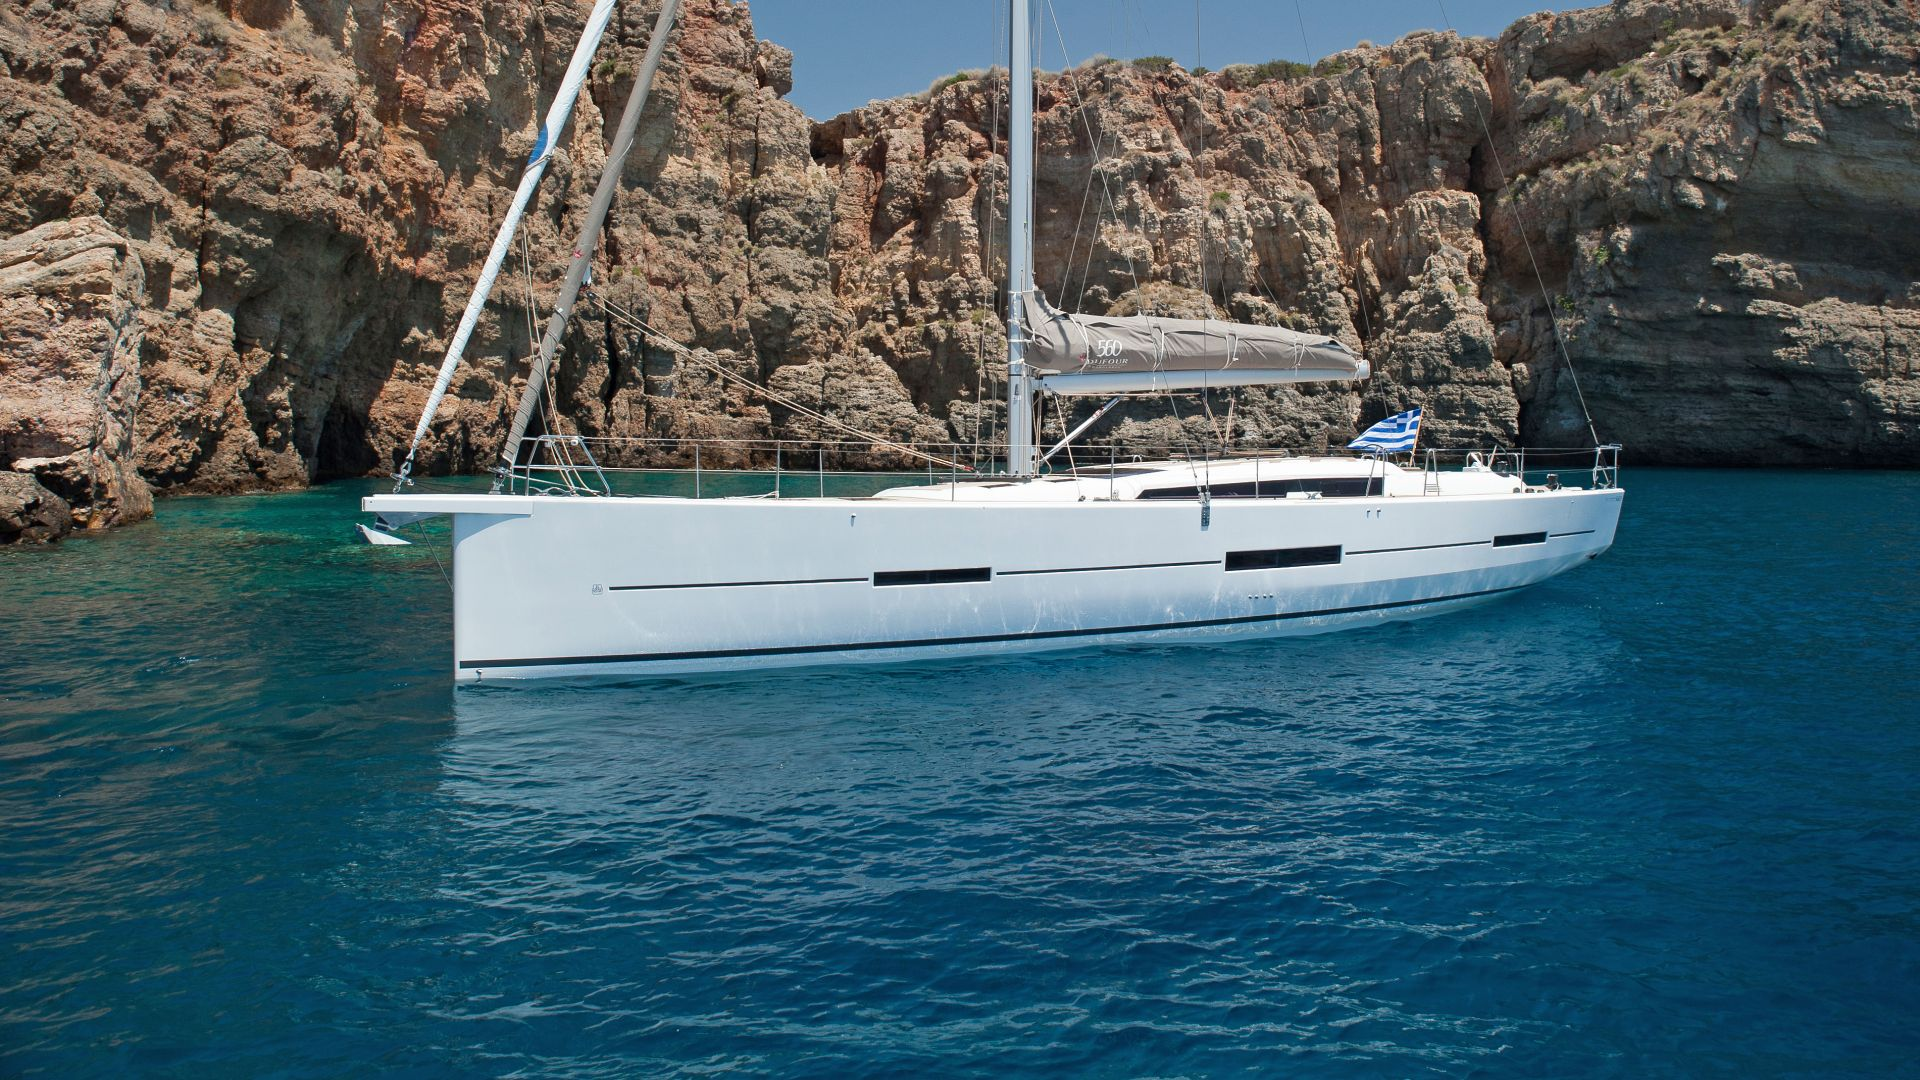 Dufour 560 Class - Sailing Yacht for Charter in Greece